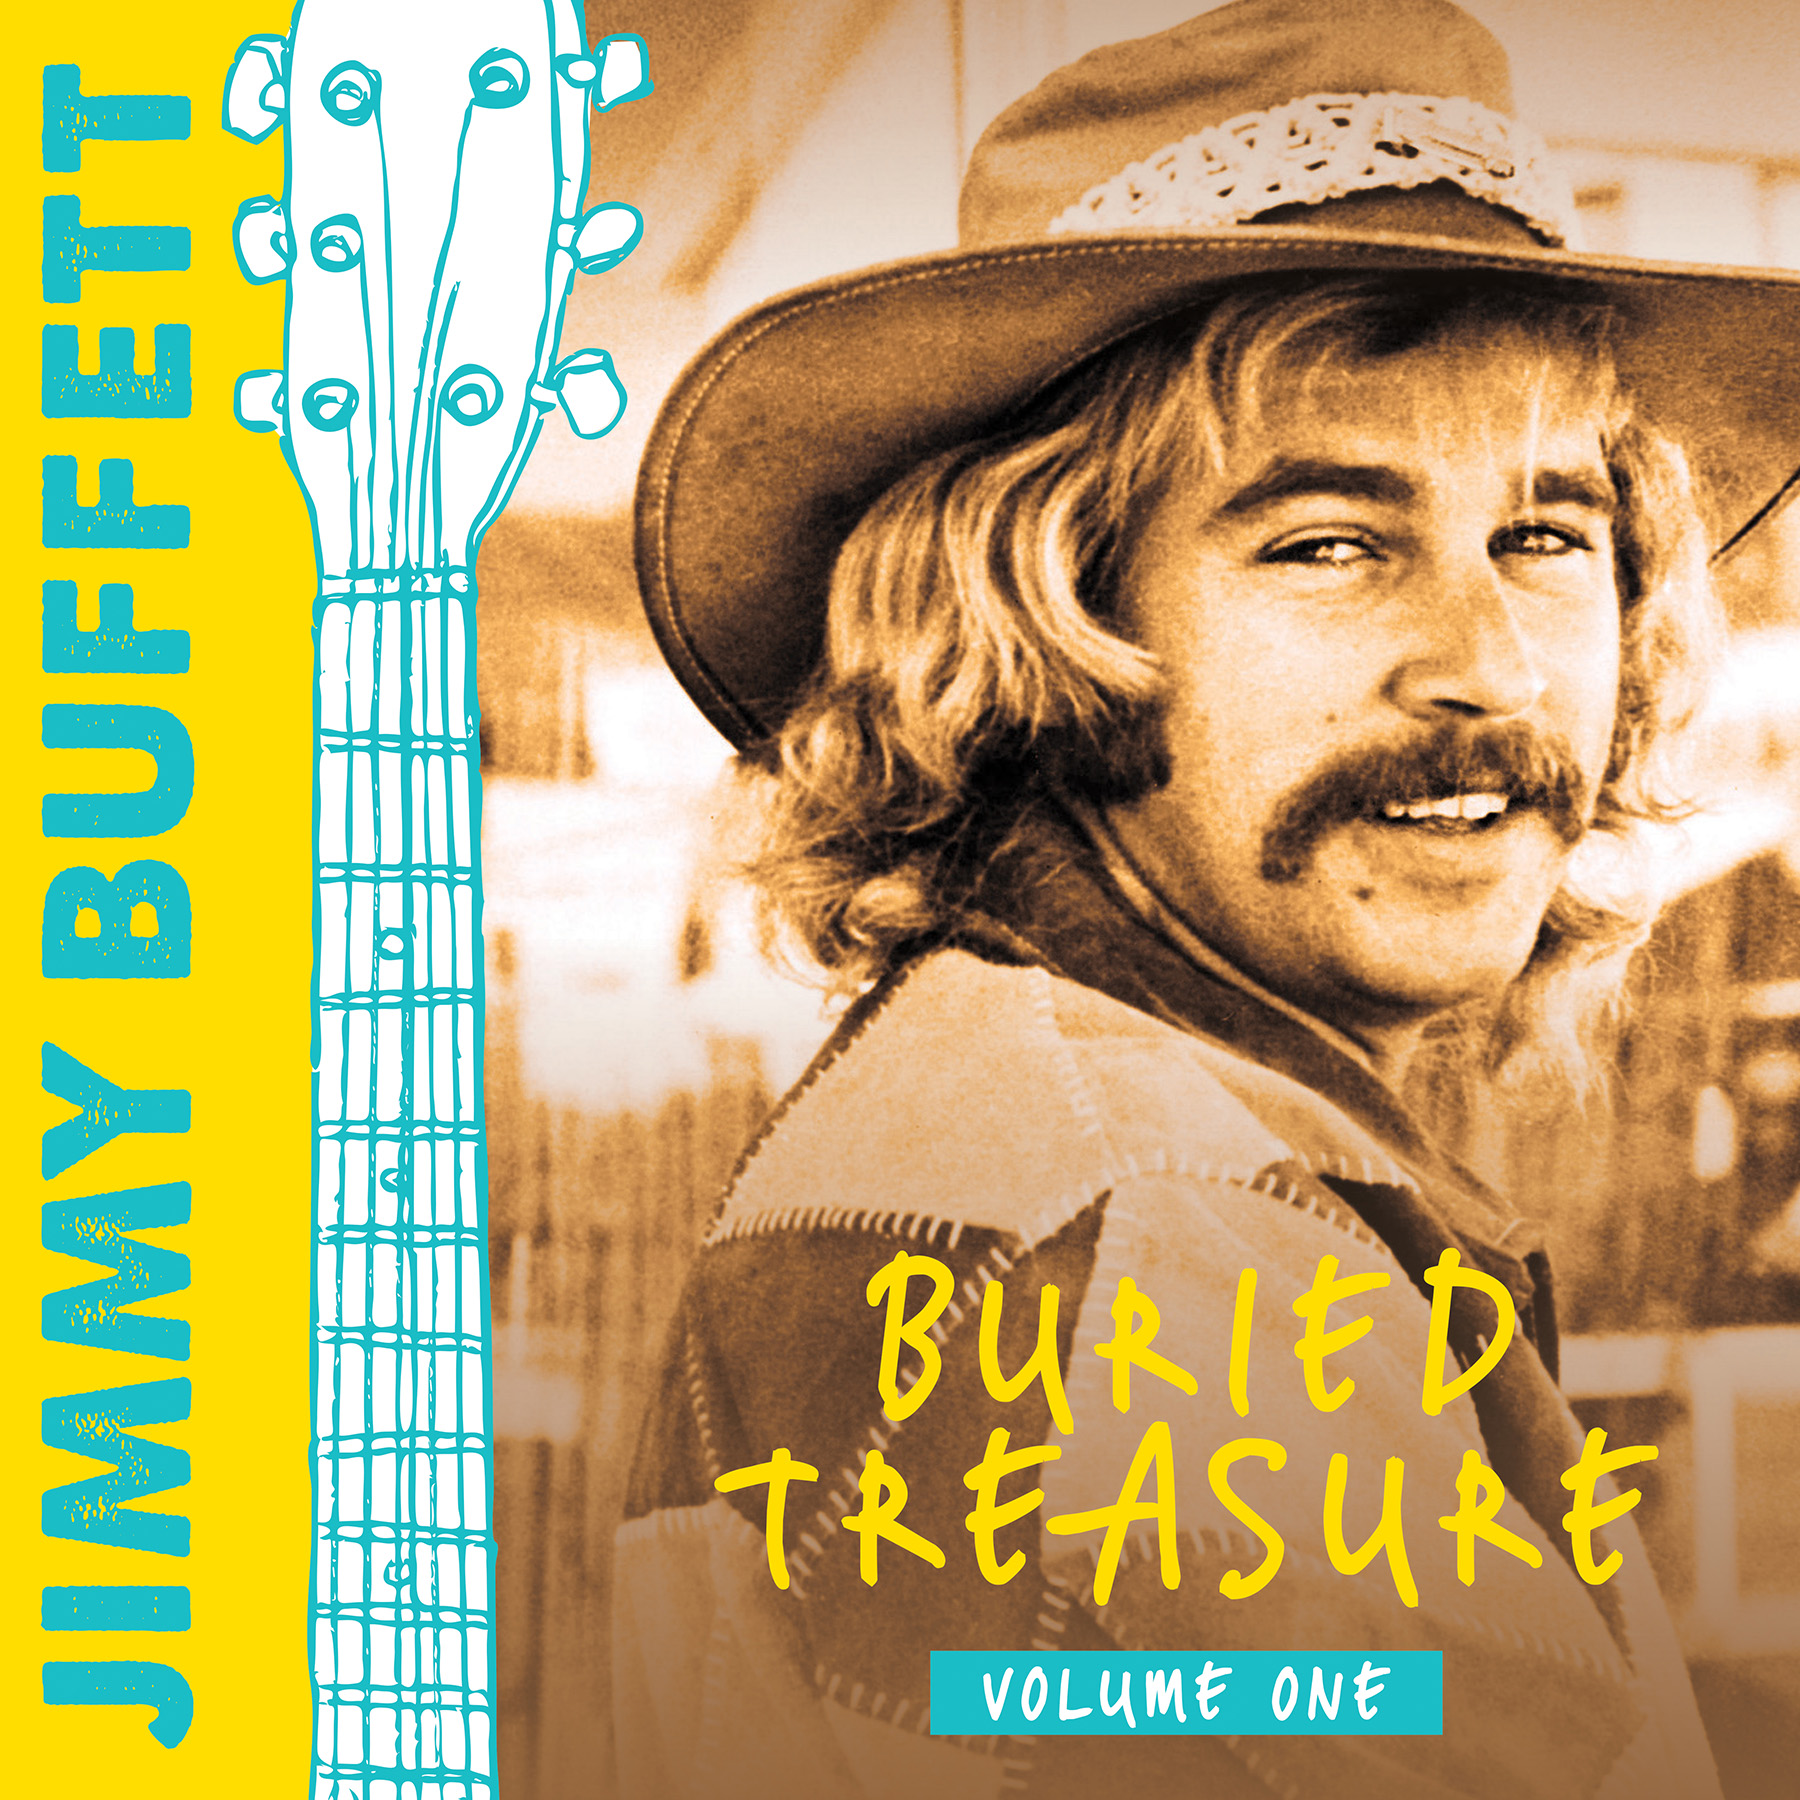 Jimmy Buffett Early \'Buried Treasure\' Collection Out | Best Classic ...